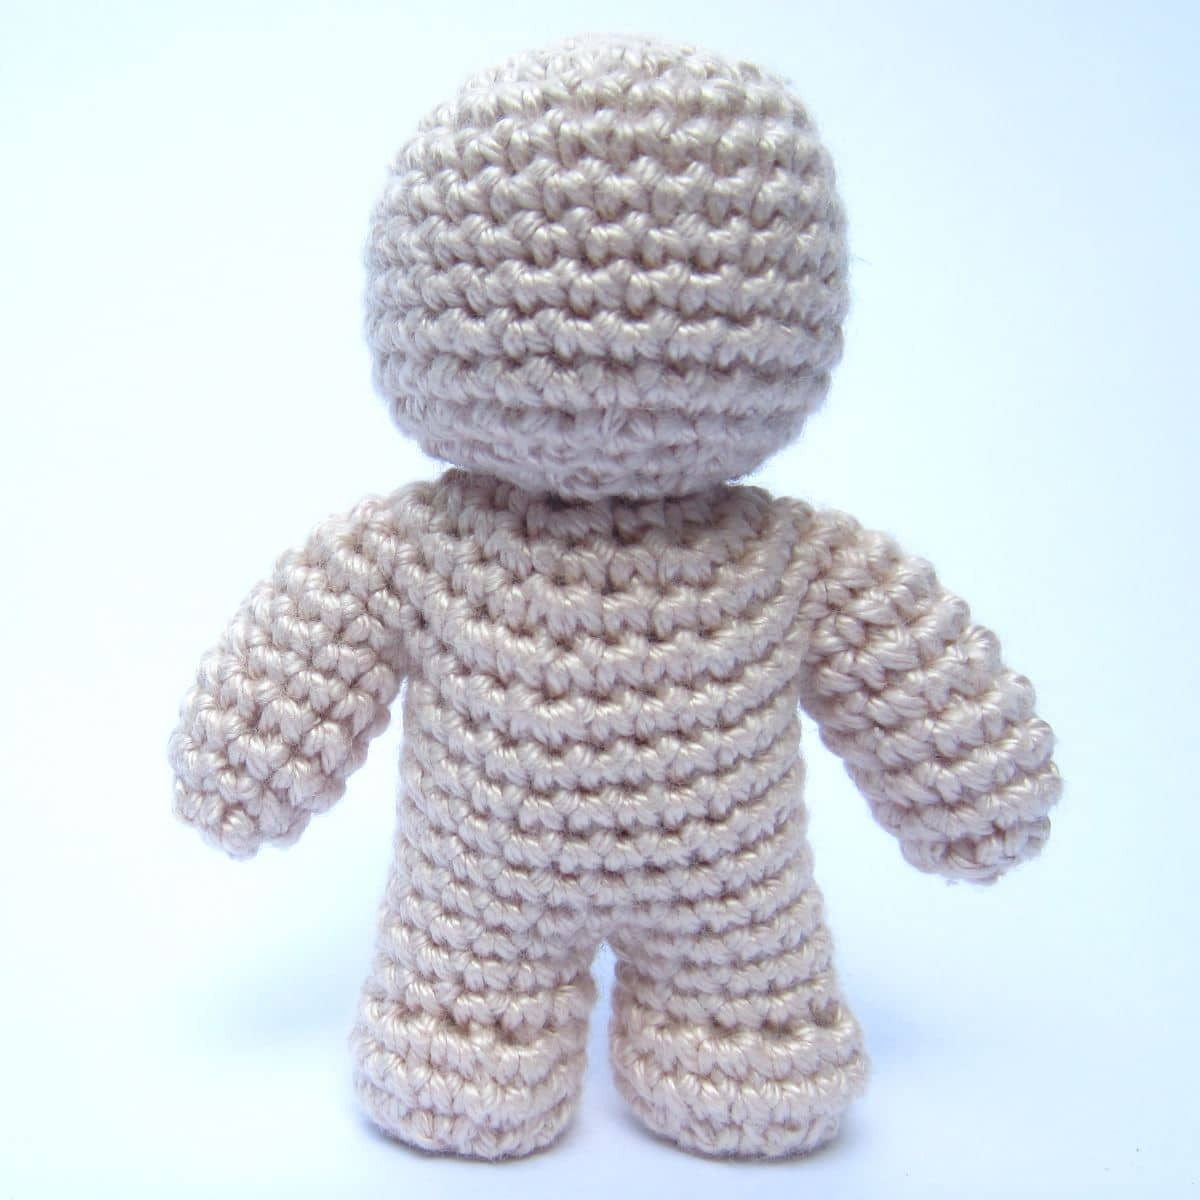 "Doll Patterns Unique E Piece Crochet Doll Pattern Supergurumi Of Doll Patterns Inspirational 12"" Doll Crochet Pattern Mamacheemamachee"